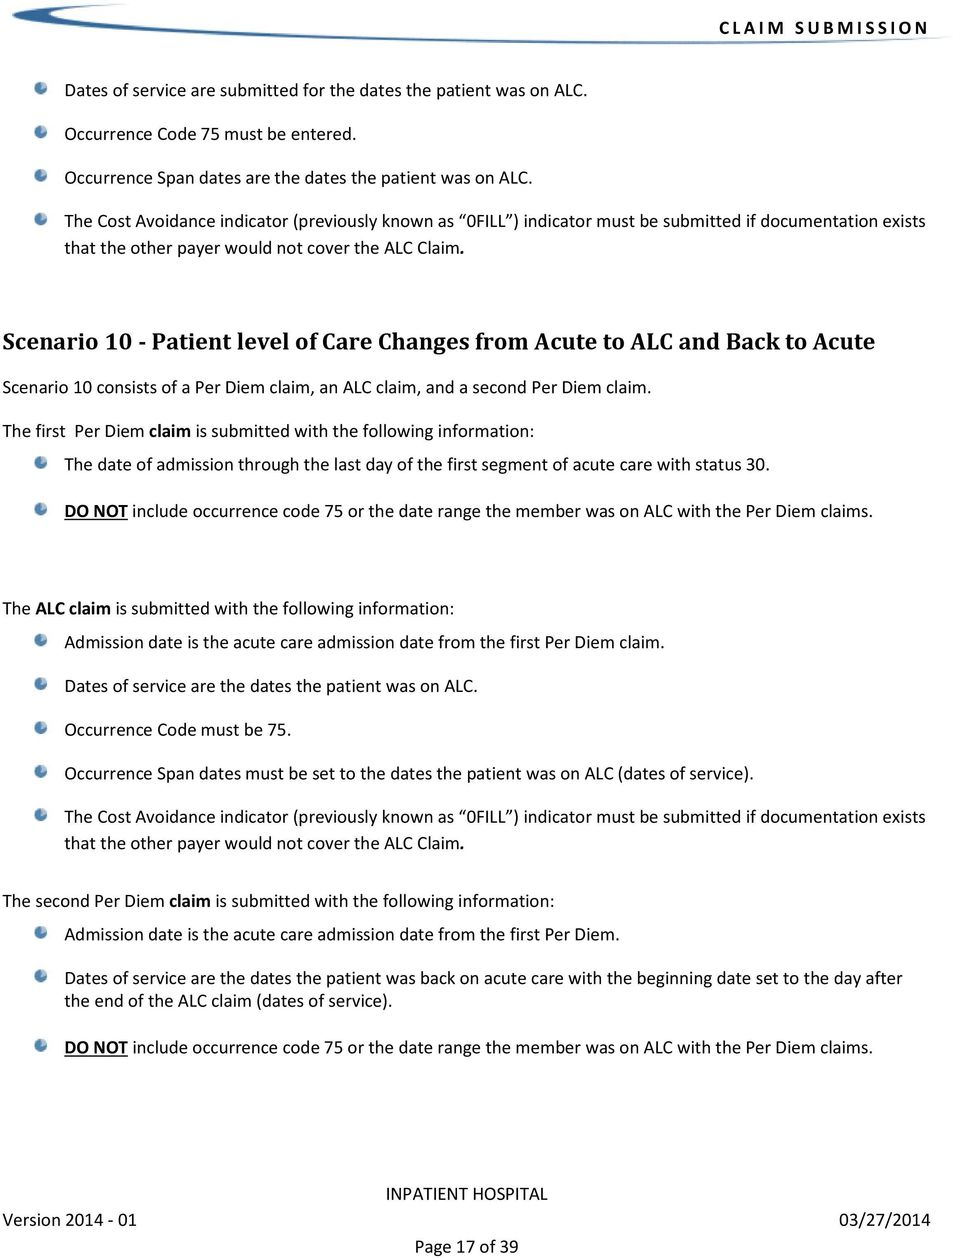 Scenario 10 - Patient level of Care Changes from Acute to ALC and Back to Acute Scenario 10 consists of a Per Diem claim, an ALC claim, and a second Per Diem claim.